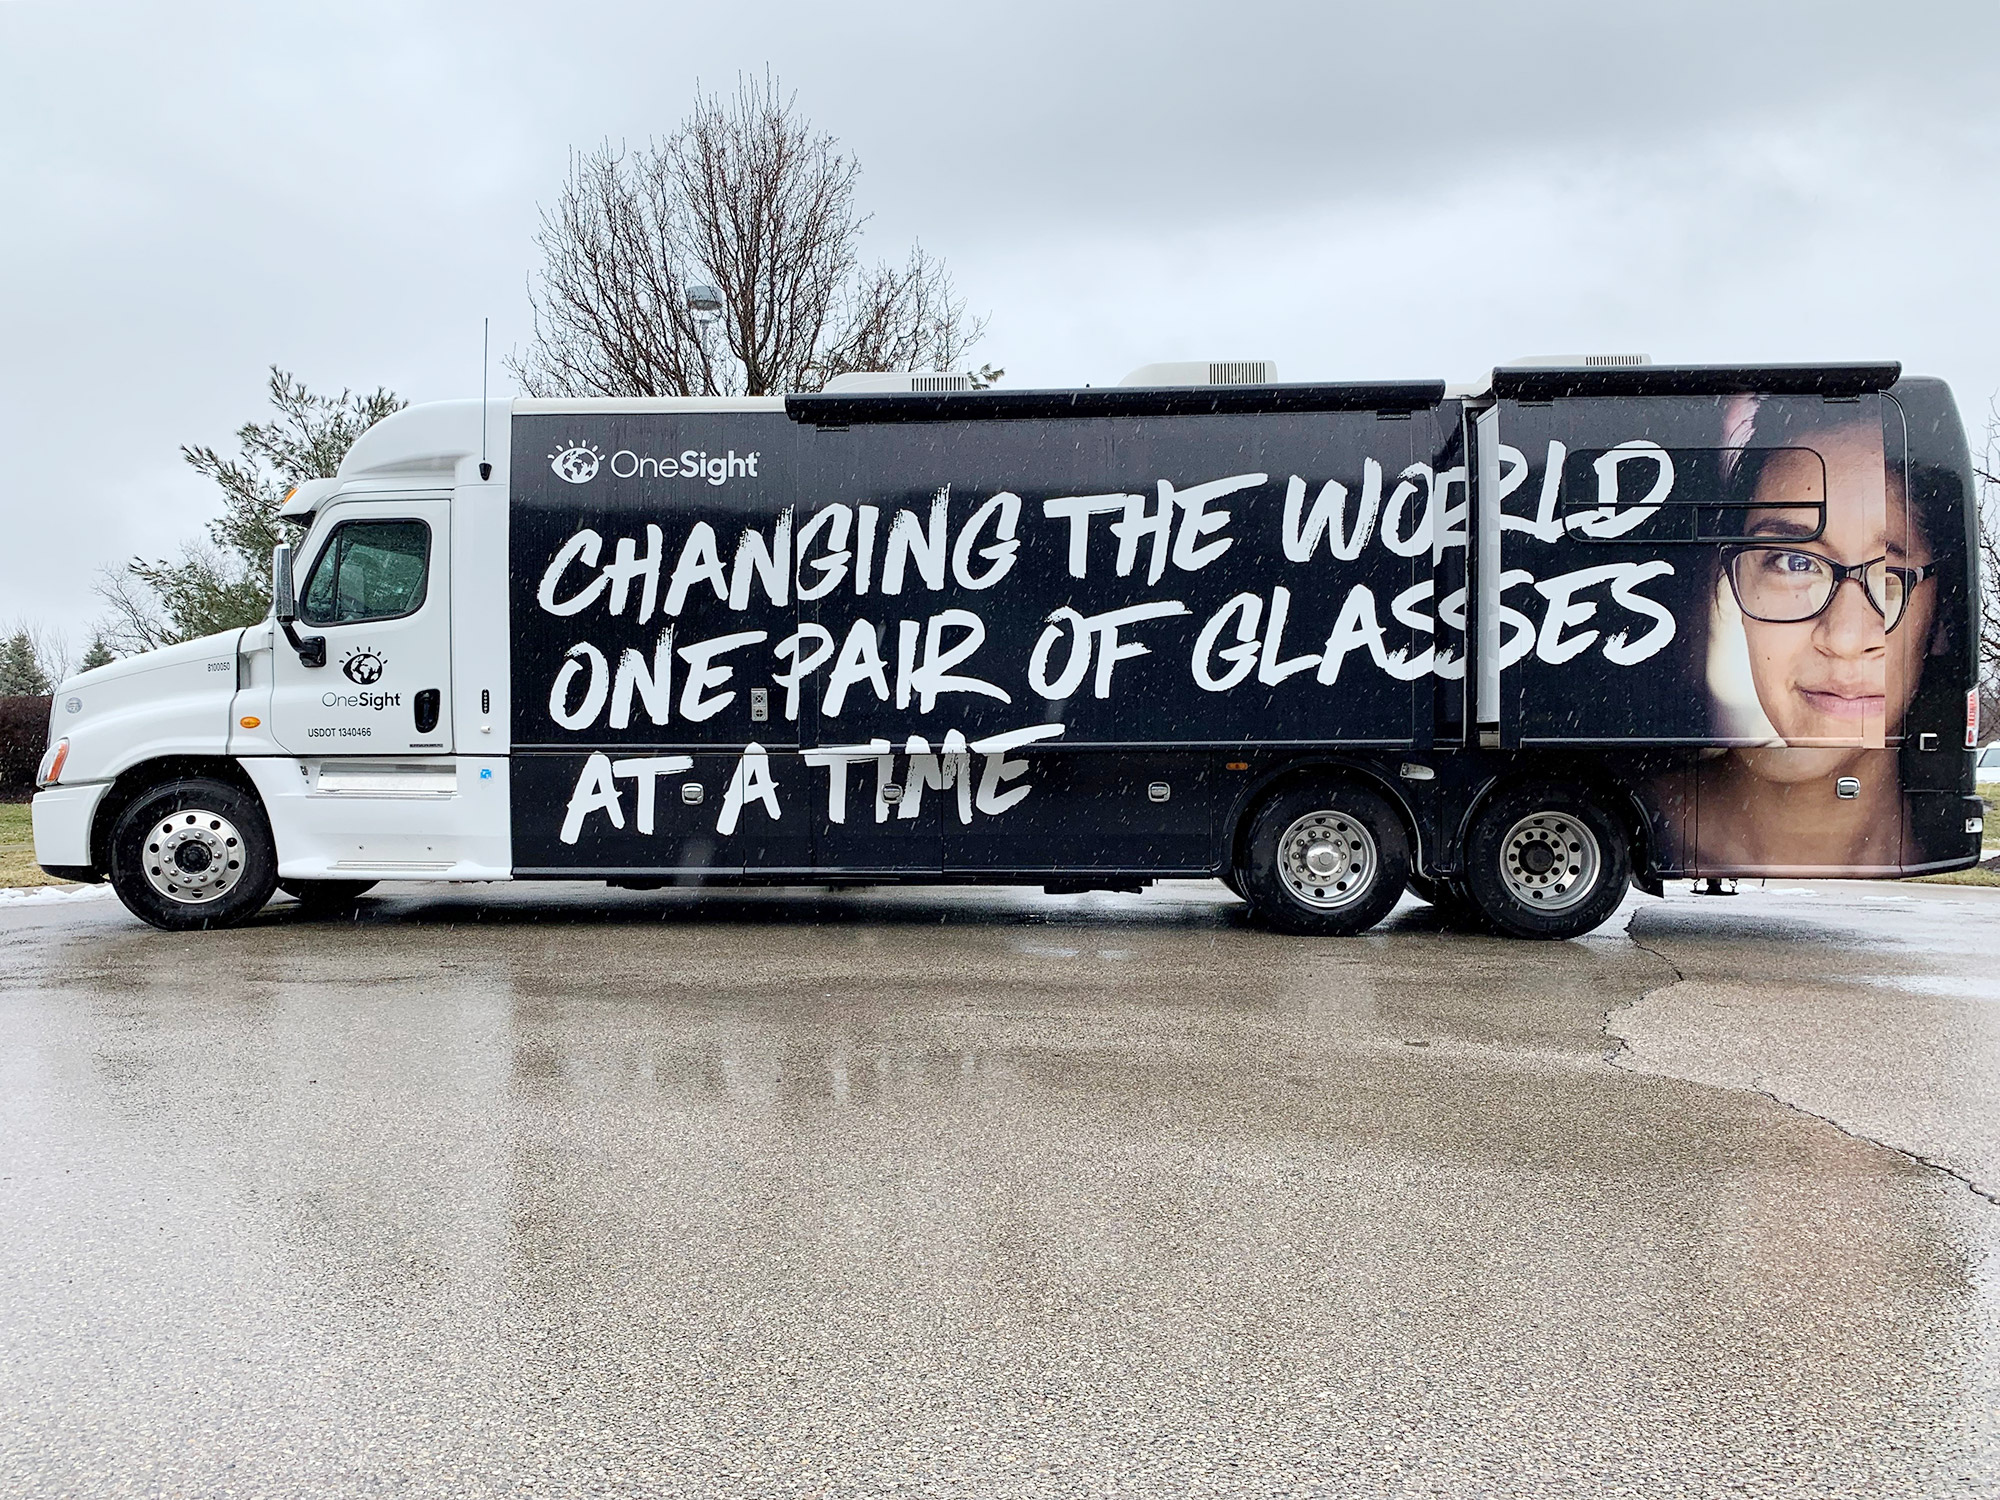 f6a44f581b9 Optometrists will perform eye exams on board OneSight s state-of-the-art  mobile vision unit